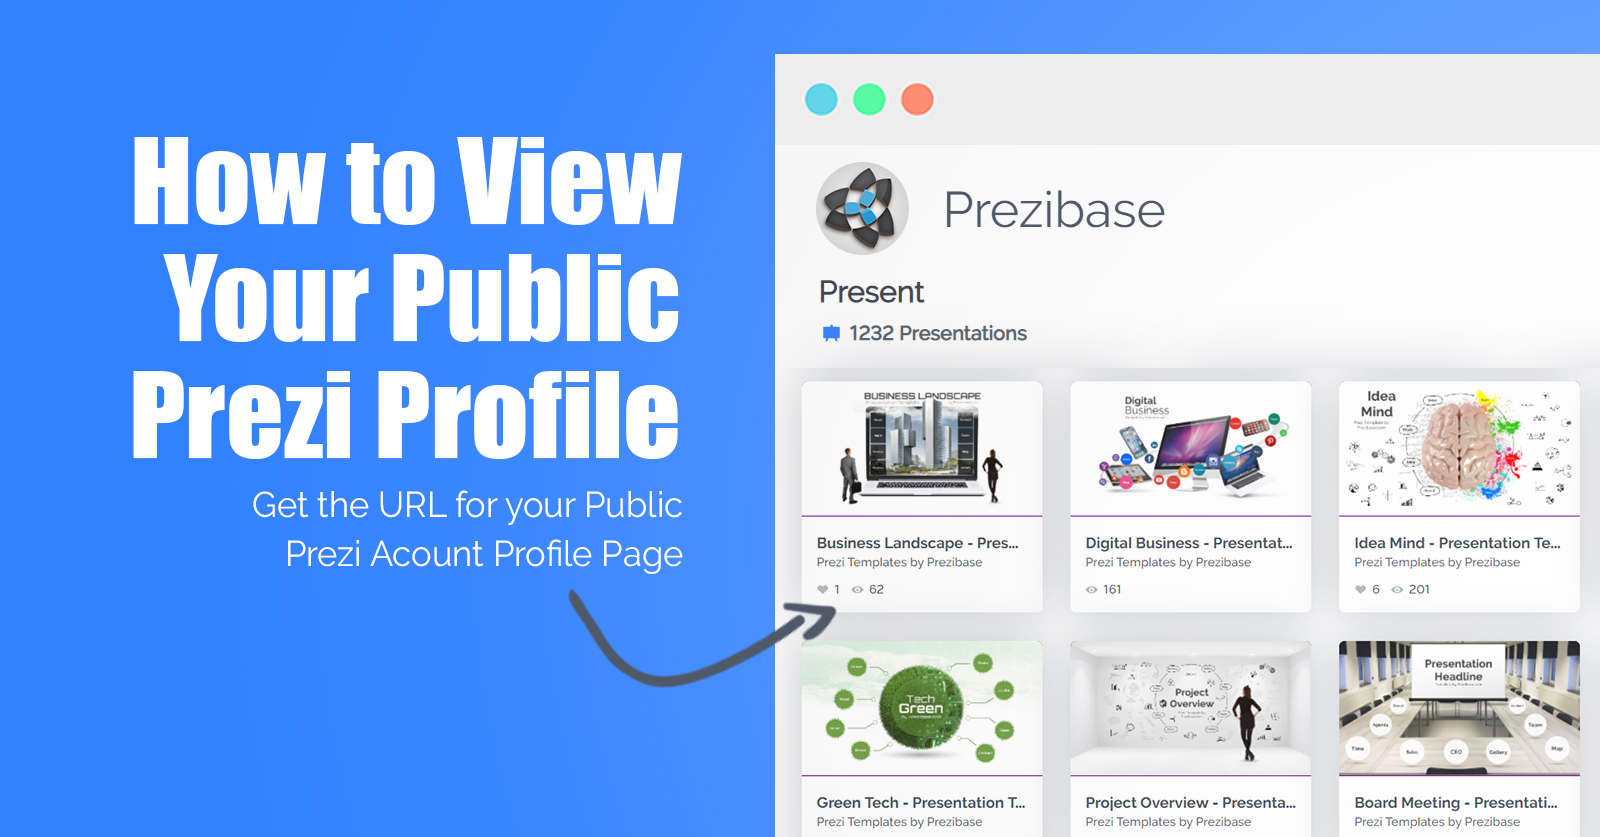 how-to-view-your-public-prezi-profile-page